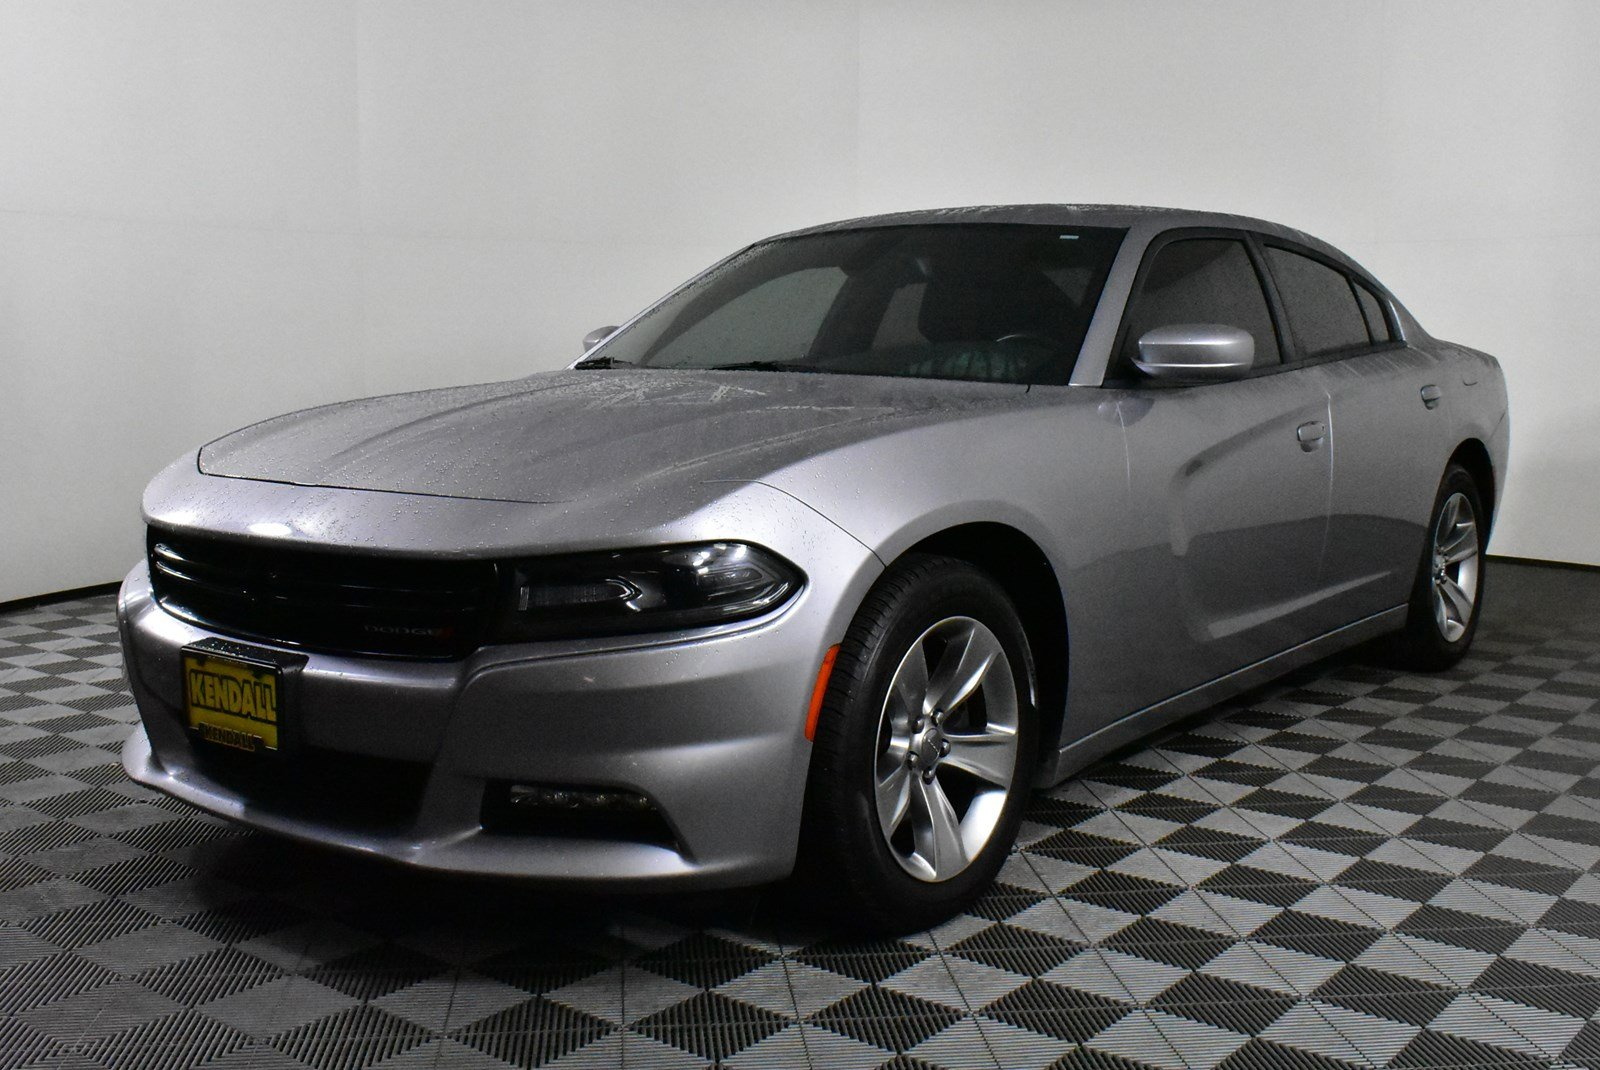 Pre Owned 2016 Dodge Charger Sxt In Nampa Du89234 Kendall At The Idaho Center Auto Mall